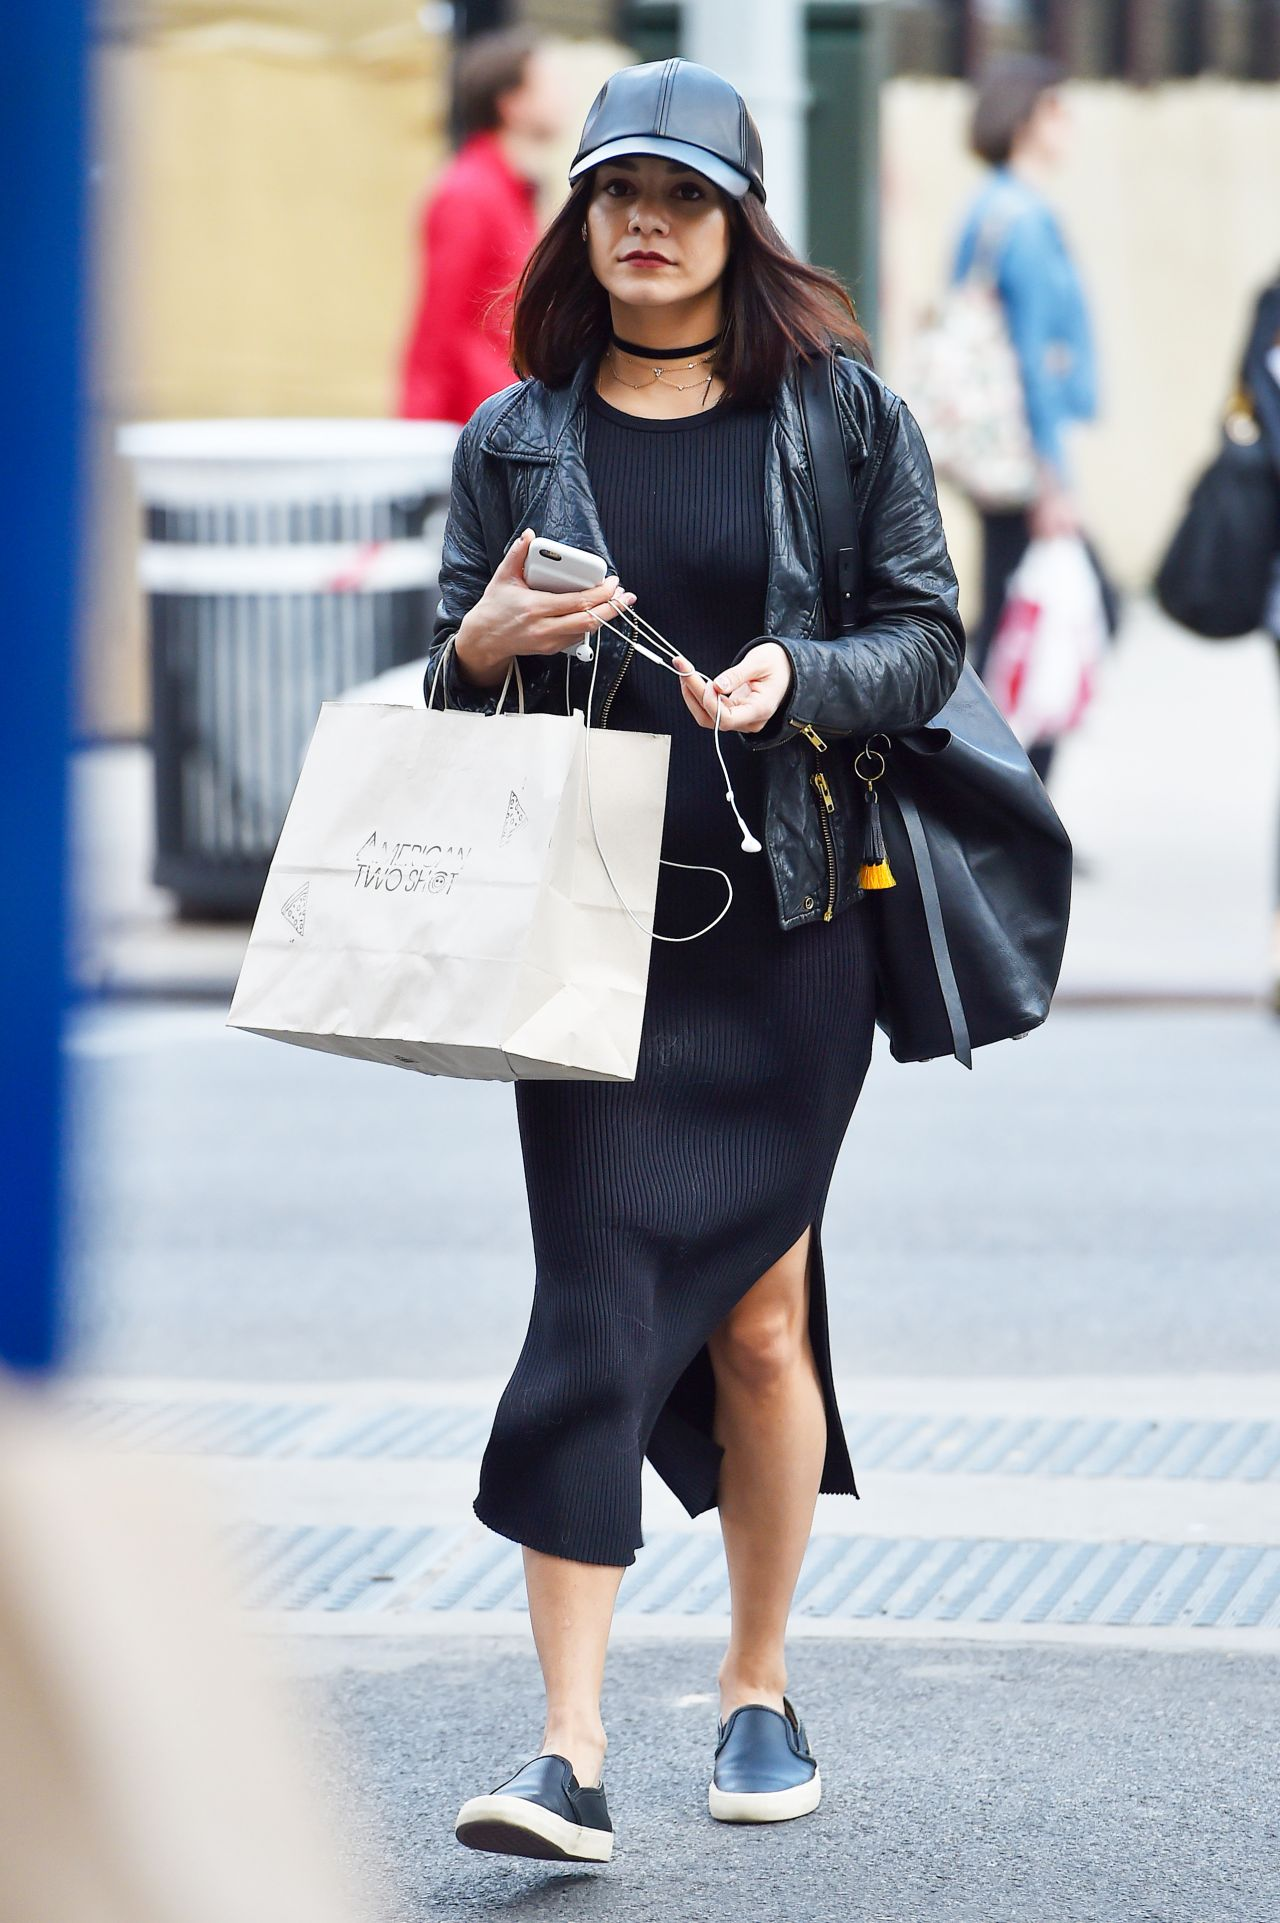 Vanessa Hudgens Shopping At American Two Shot In Manhattan New York City 3 23 2016